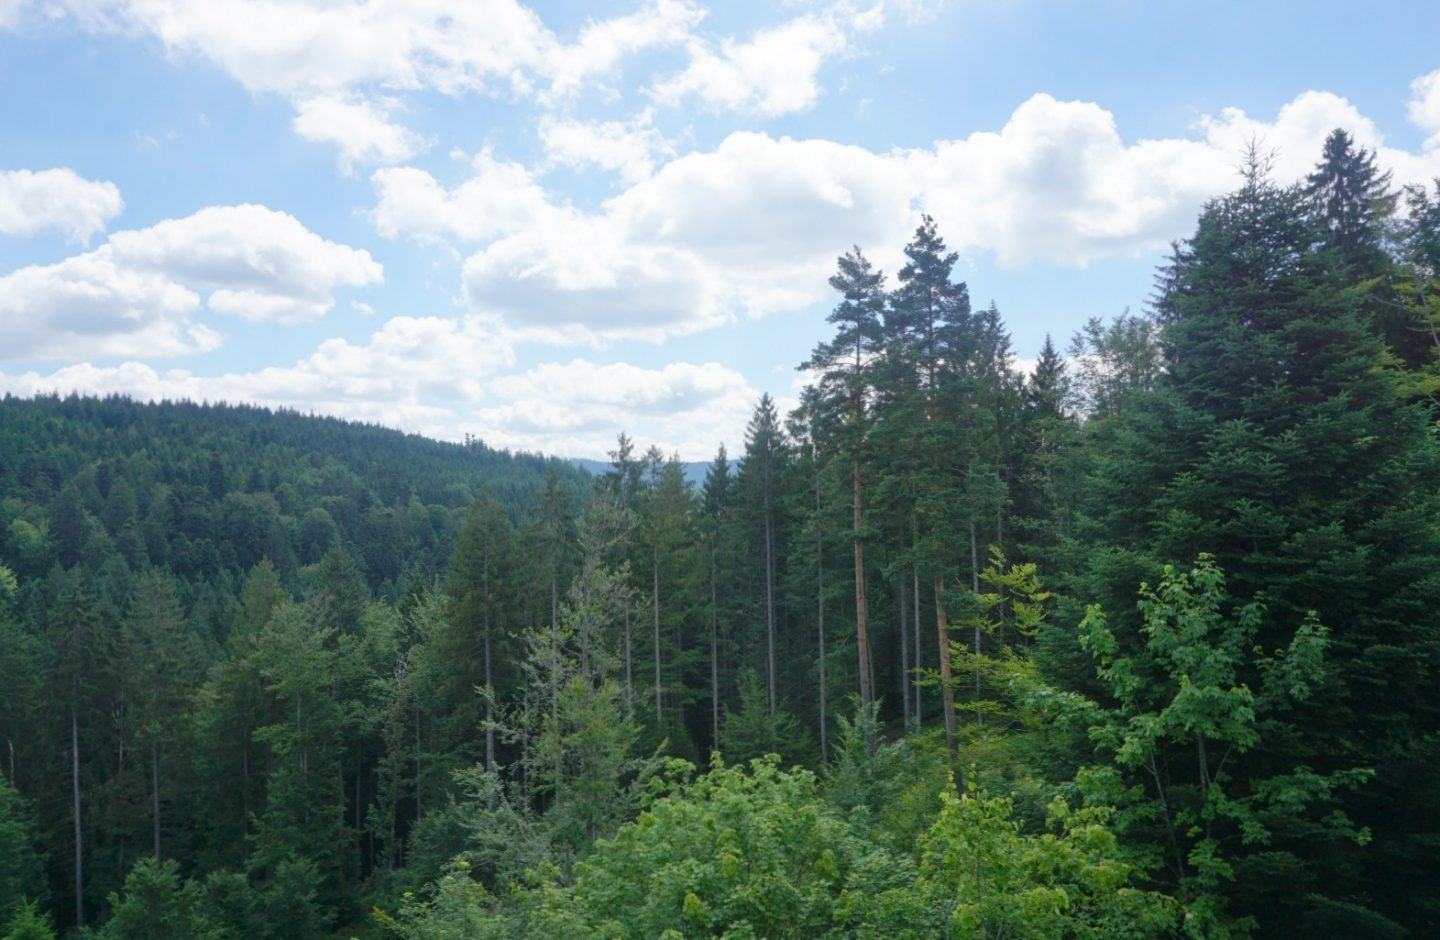 A view of the Black Forest, My Sunday Photos www.extraordinarychaos.com